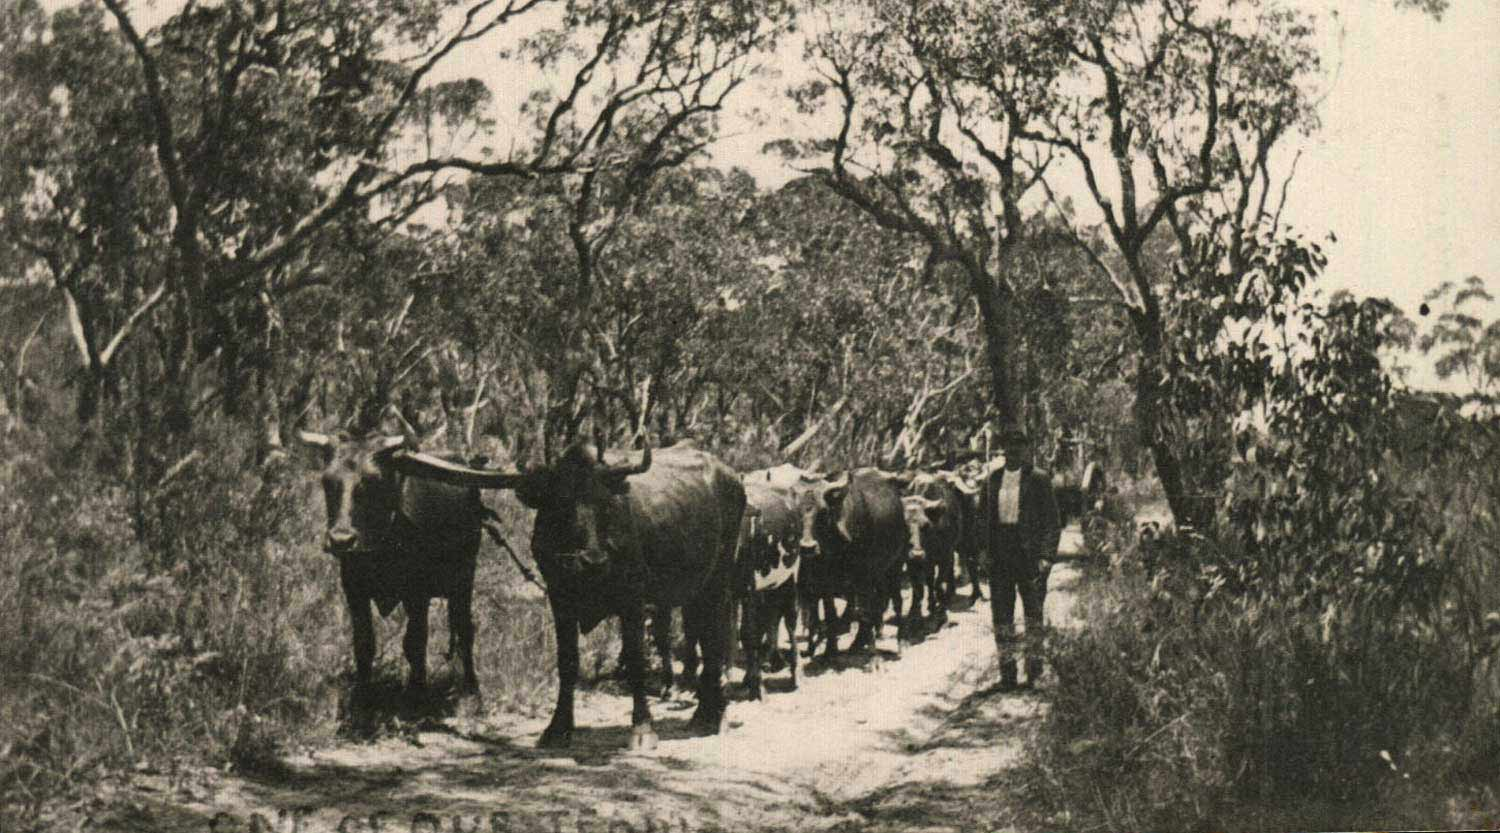 Droving Bullock in times past, Booderee National Park